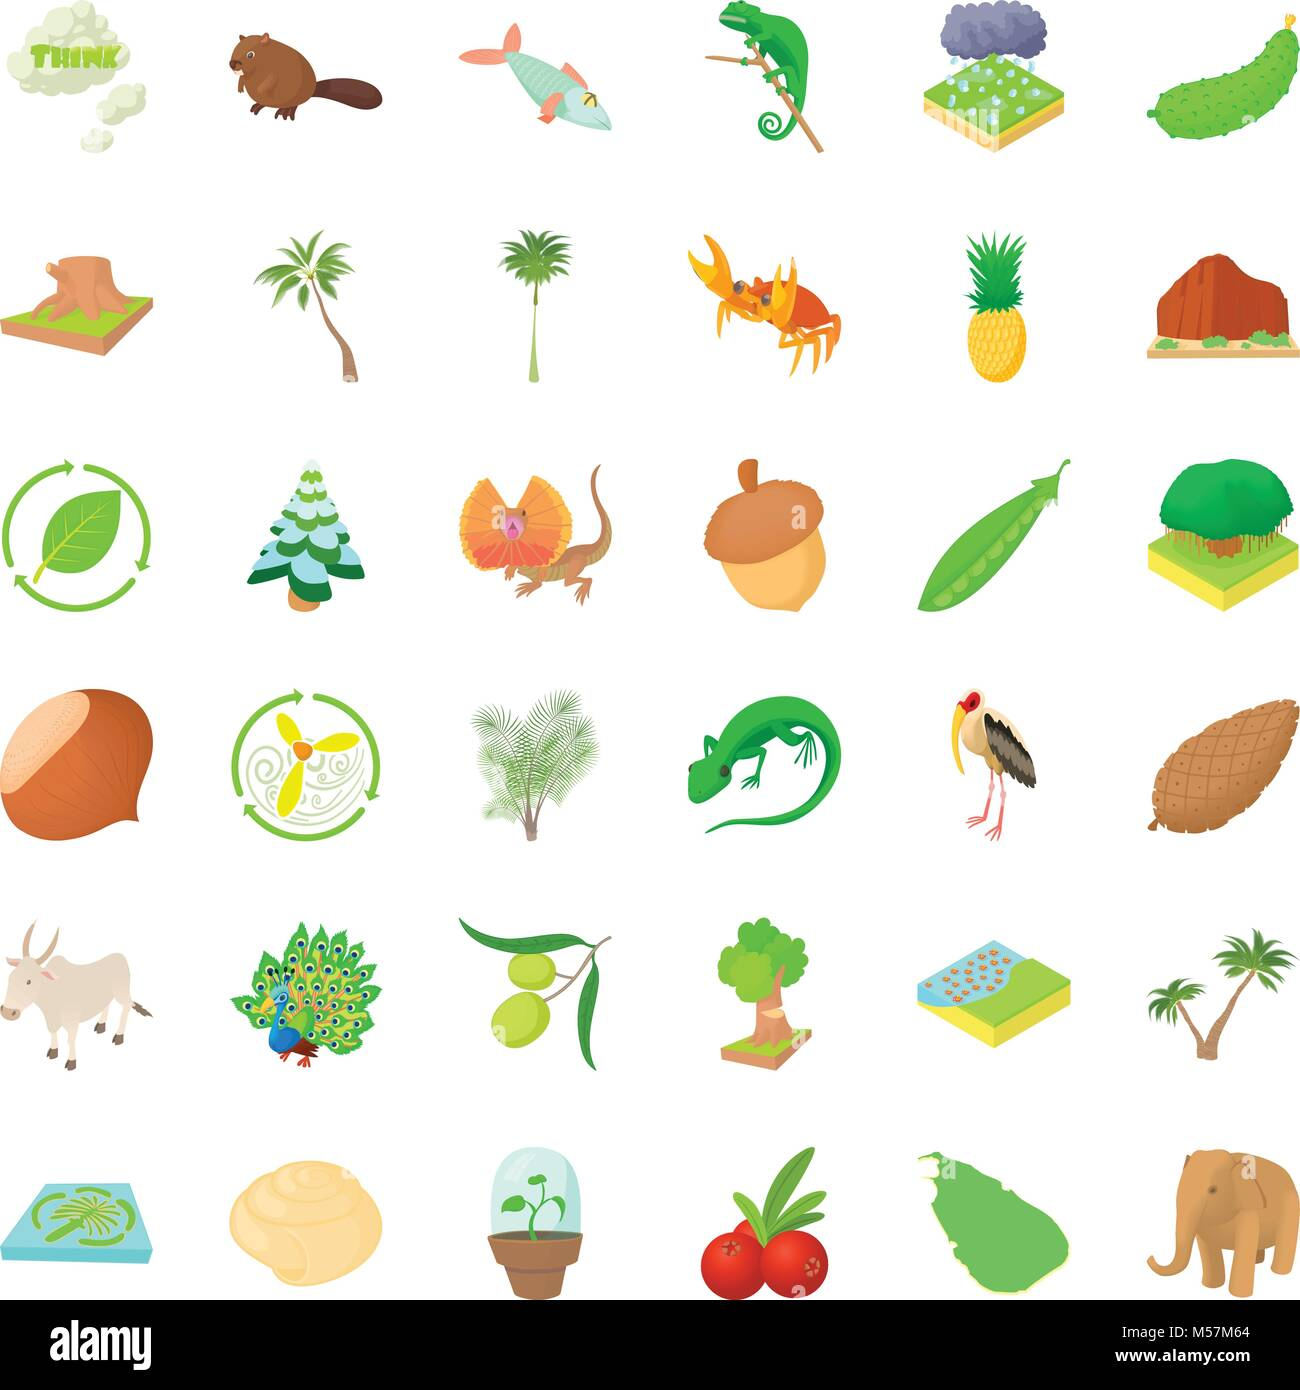 Natural riches icons set, cartoon style - Stock Image